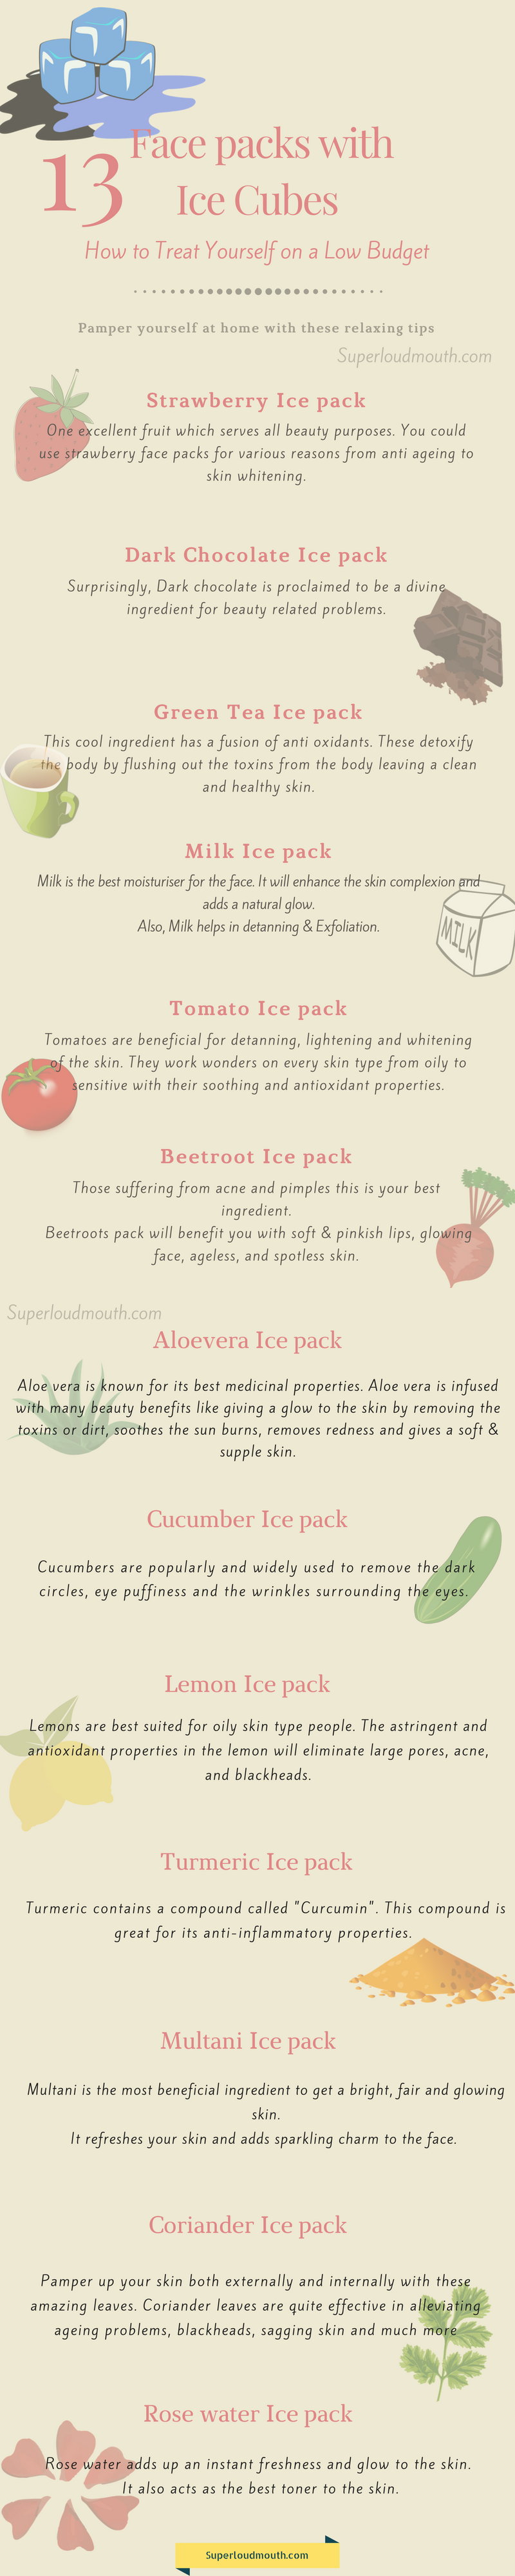 diy ice cube face packs for glowing skin